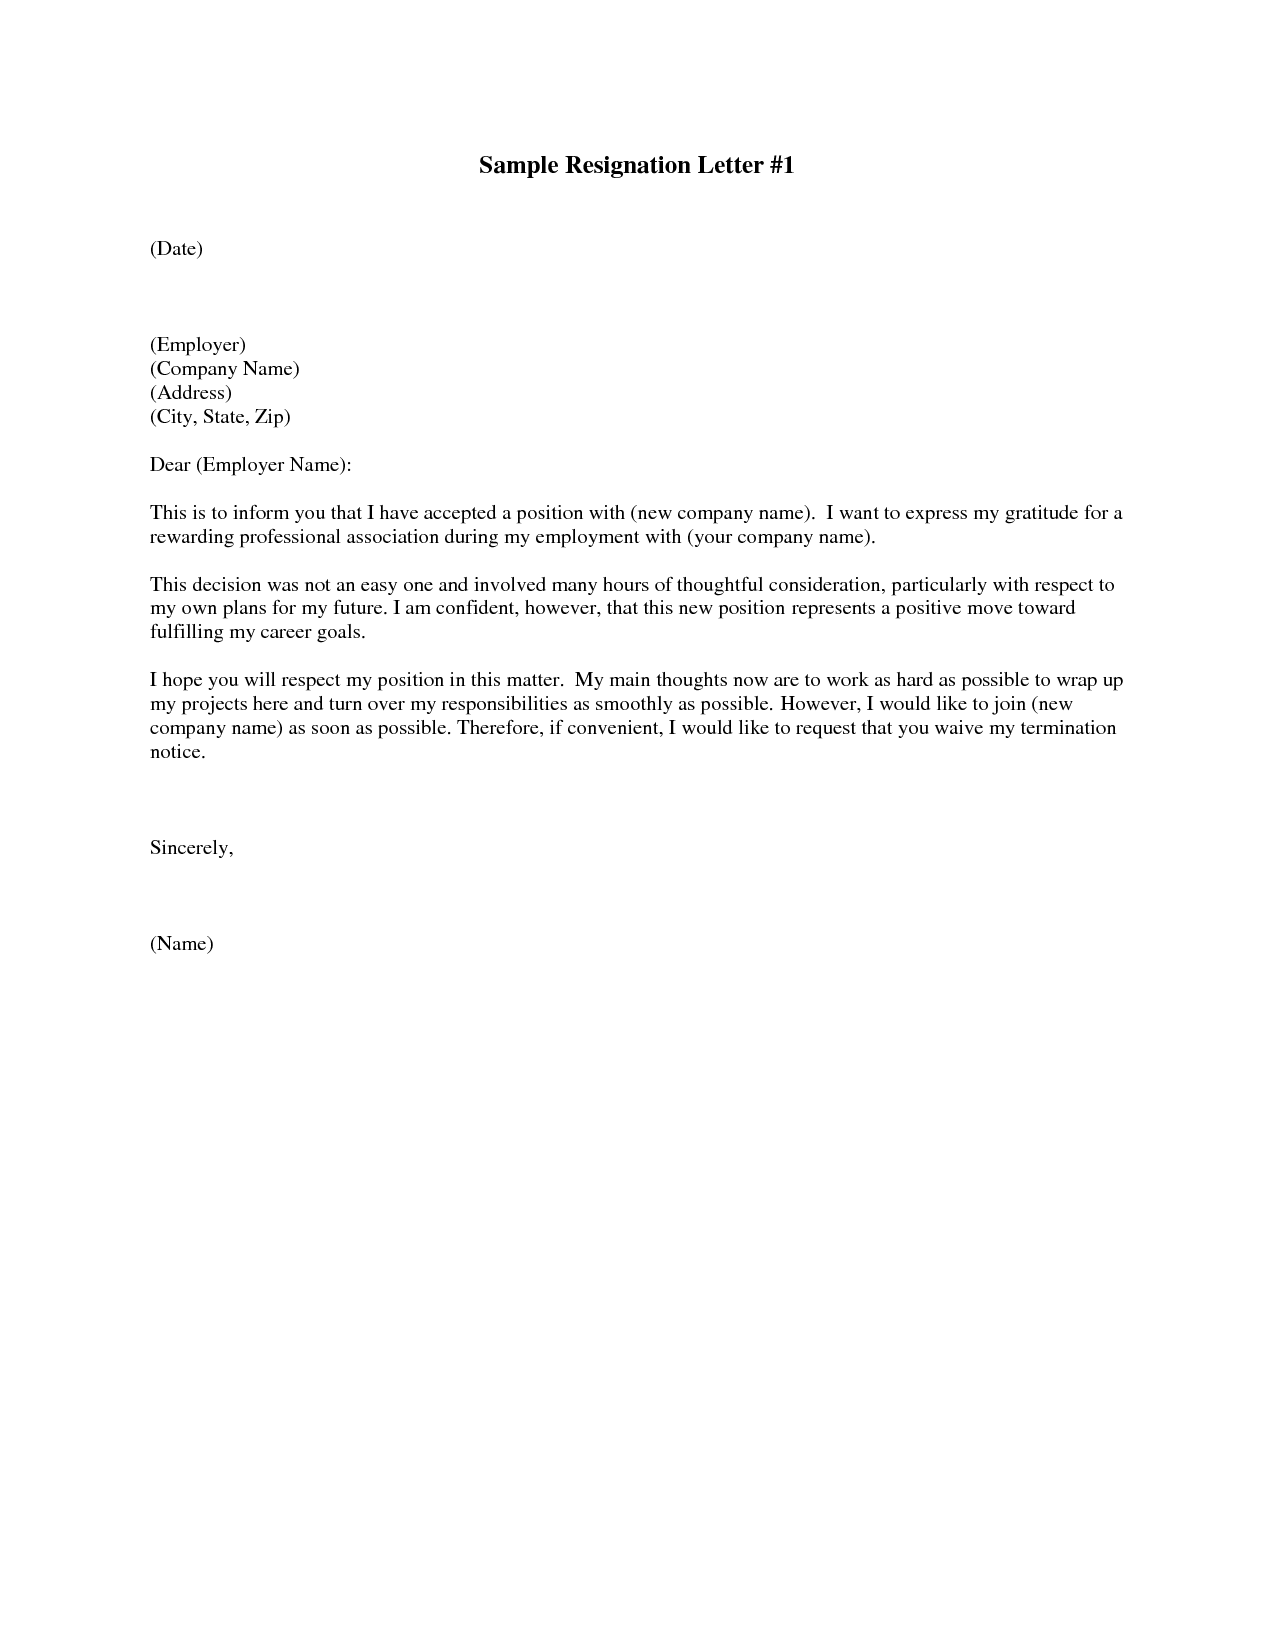 Resignation Letter Employer home care nurse sample resume – Resignation Letter from a Position